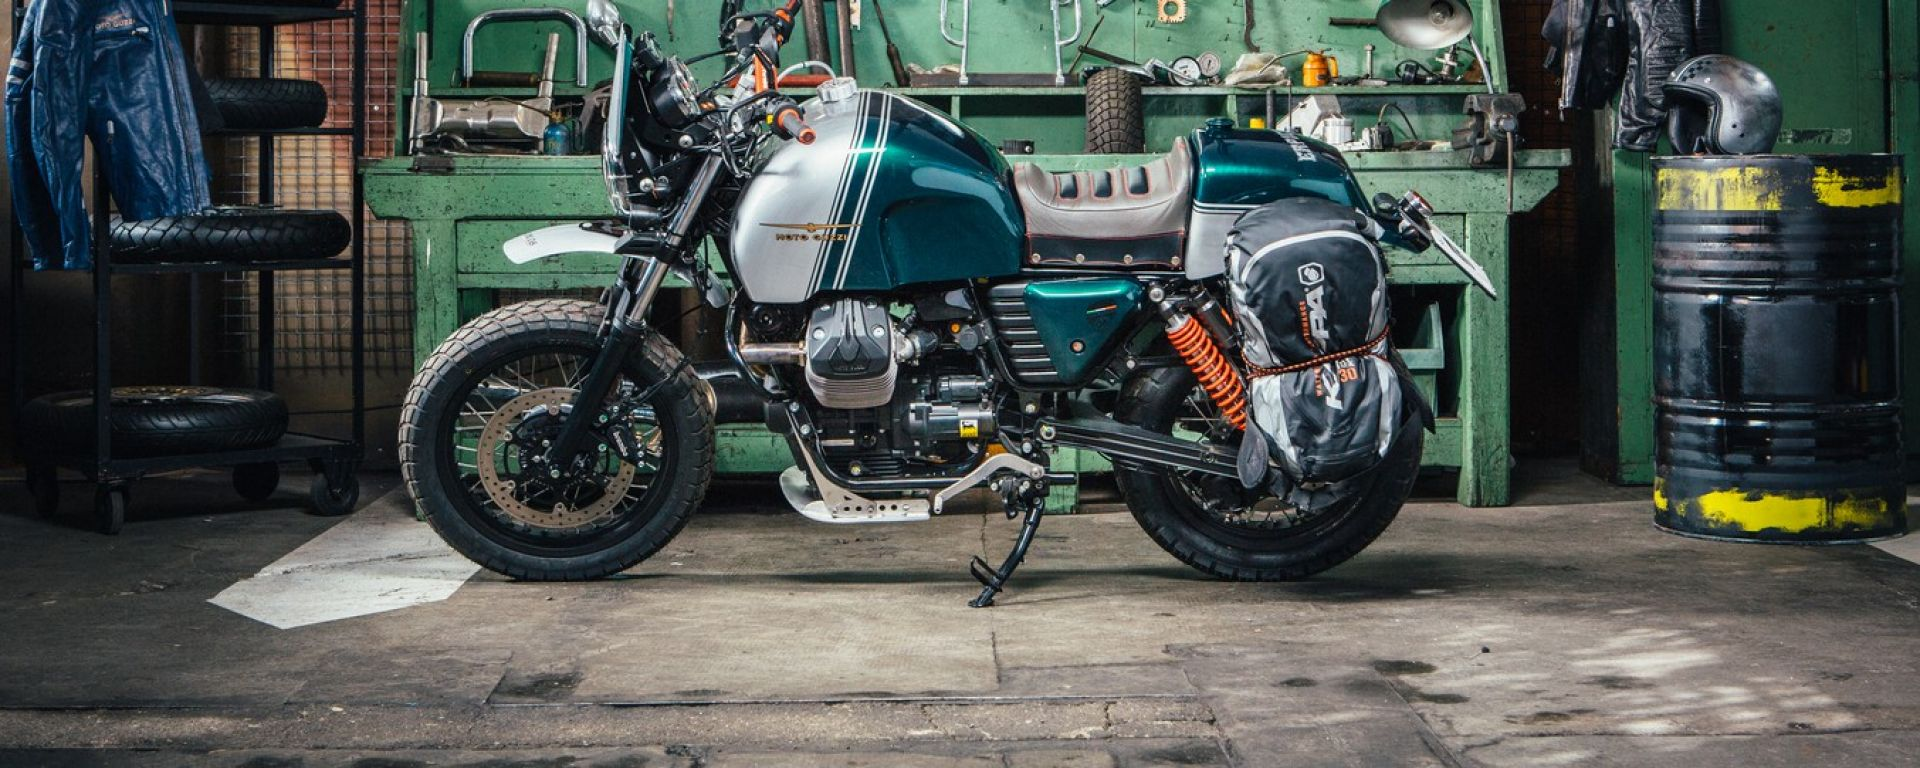 Moto Guzzi Erpico e Hunter, le prime creazioni di Lord of the Bikes